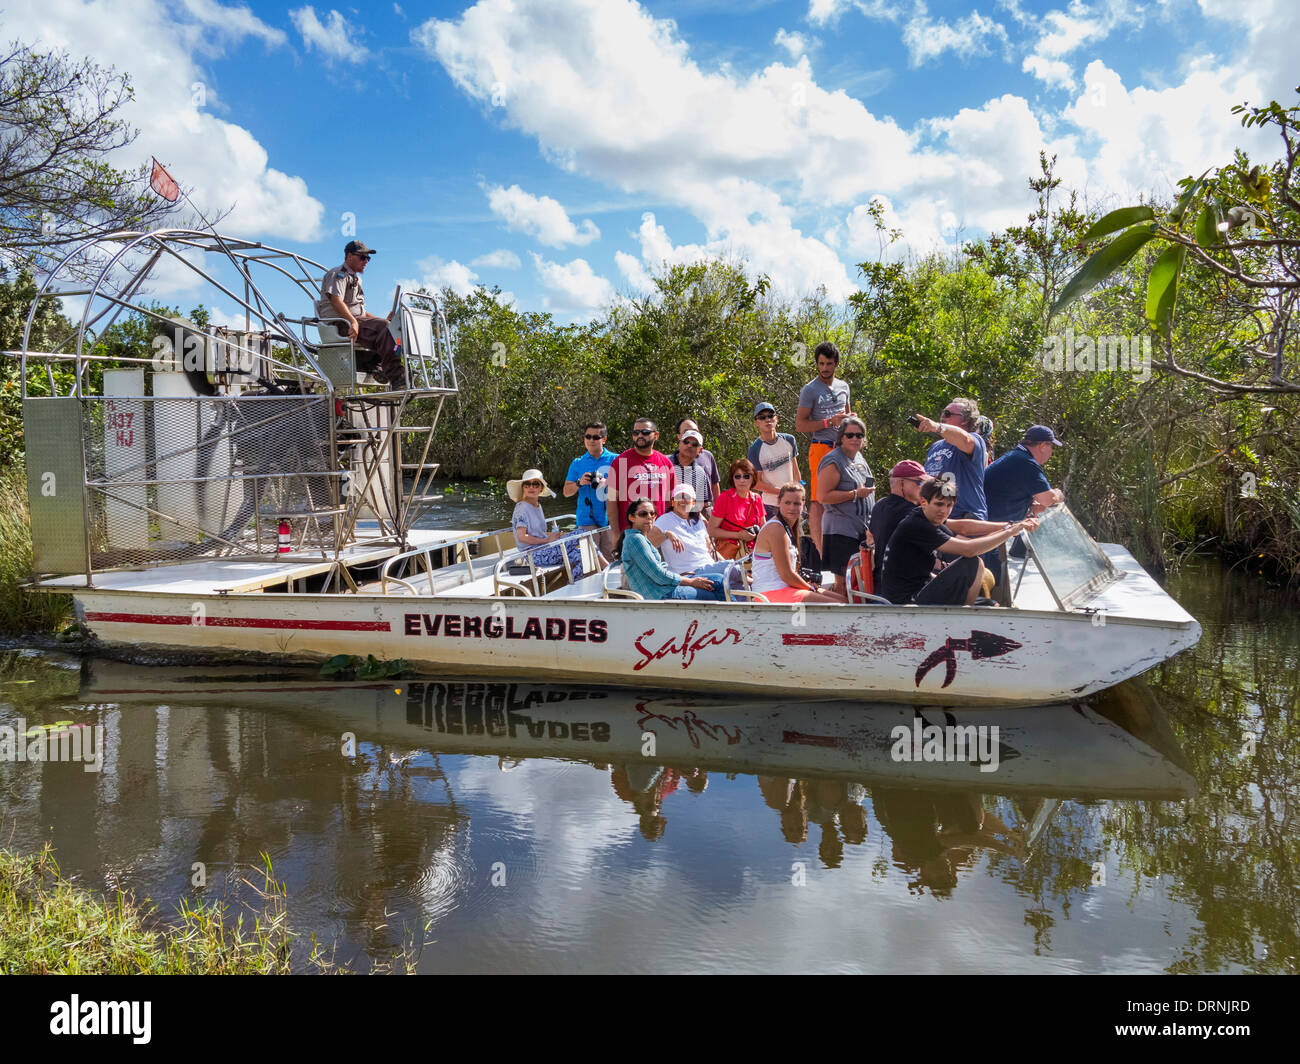 Florida Everglades National Park, Stati Uniti d'America - gruppo di turisti su un Airboat Ride Turistiche Gita in barca Gita in estate Immagini Stock